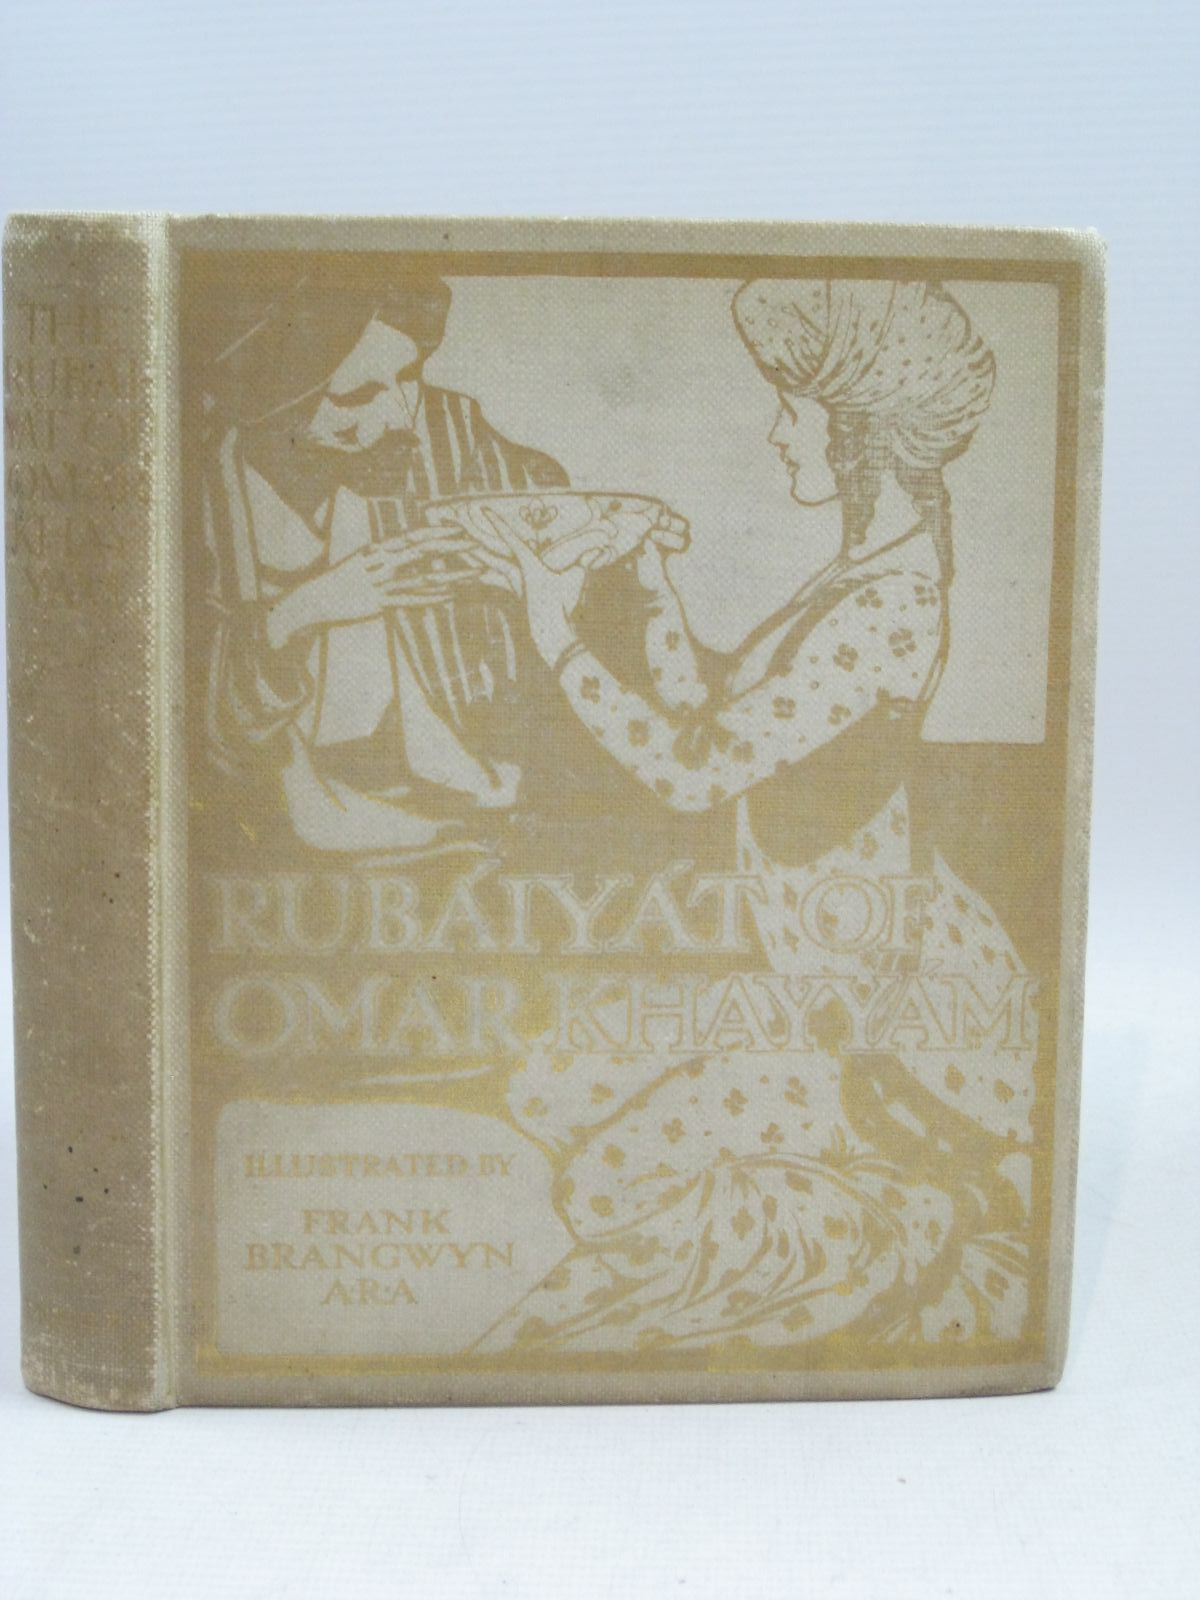 Photo of THE RUBAIYAT OF OMAR KHAYYAM written by Fitzgerald, Edward illustrated by Brangwyn, Frank published by T. N. Foulis (STOCK CODE: 1405007)  for sale by Stella & Rose's Books